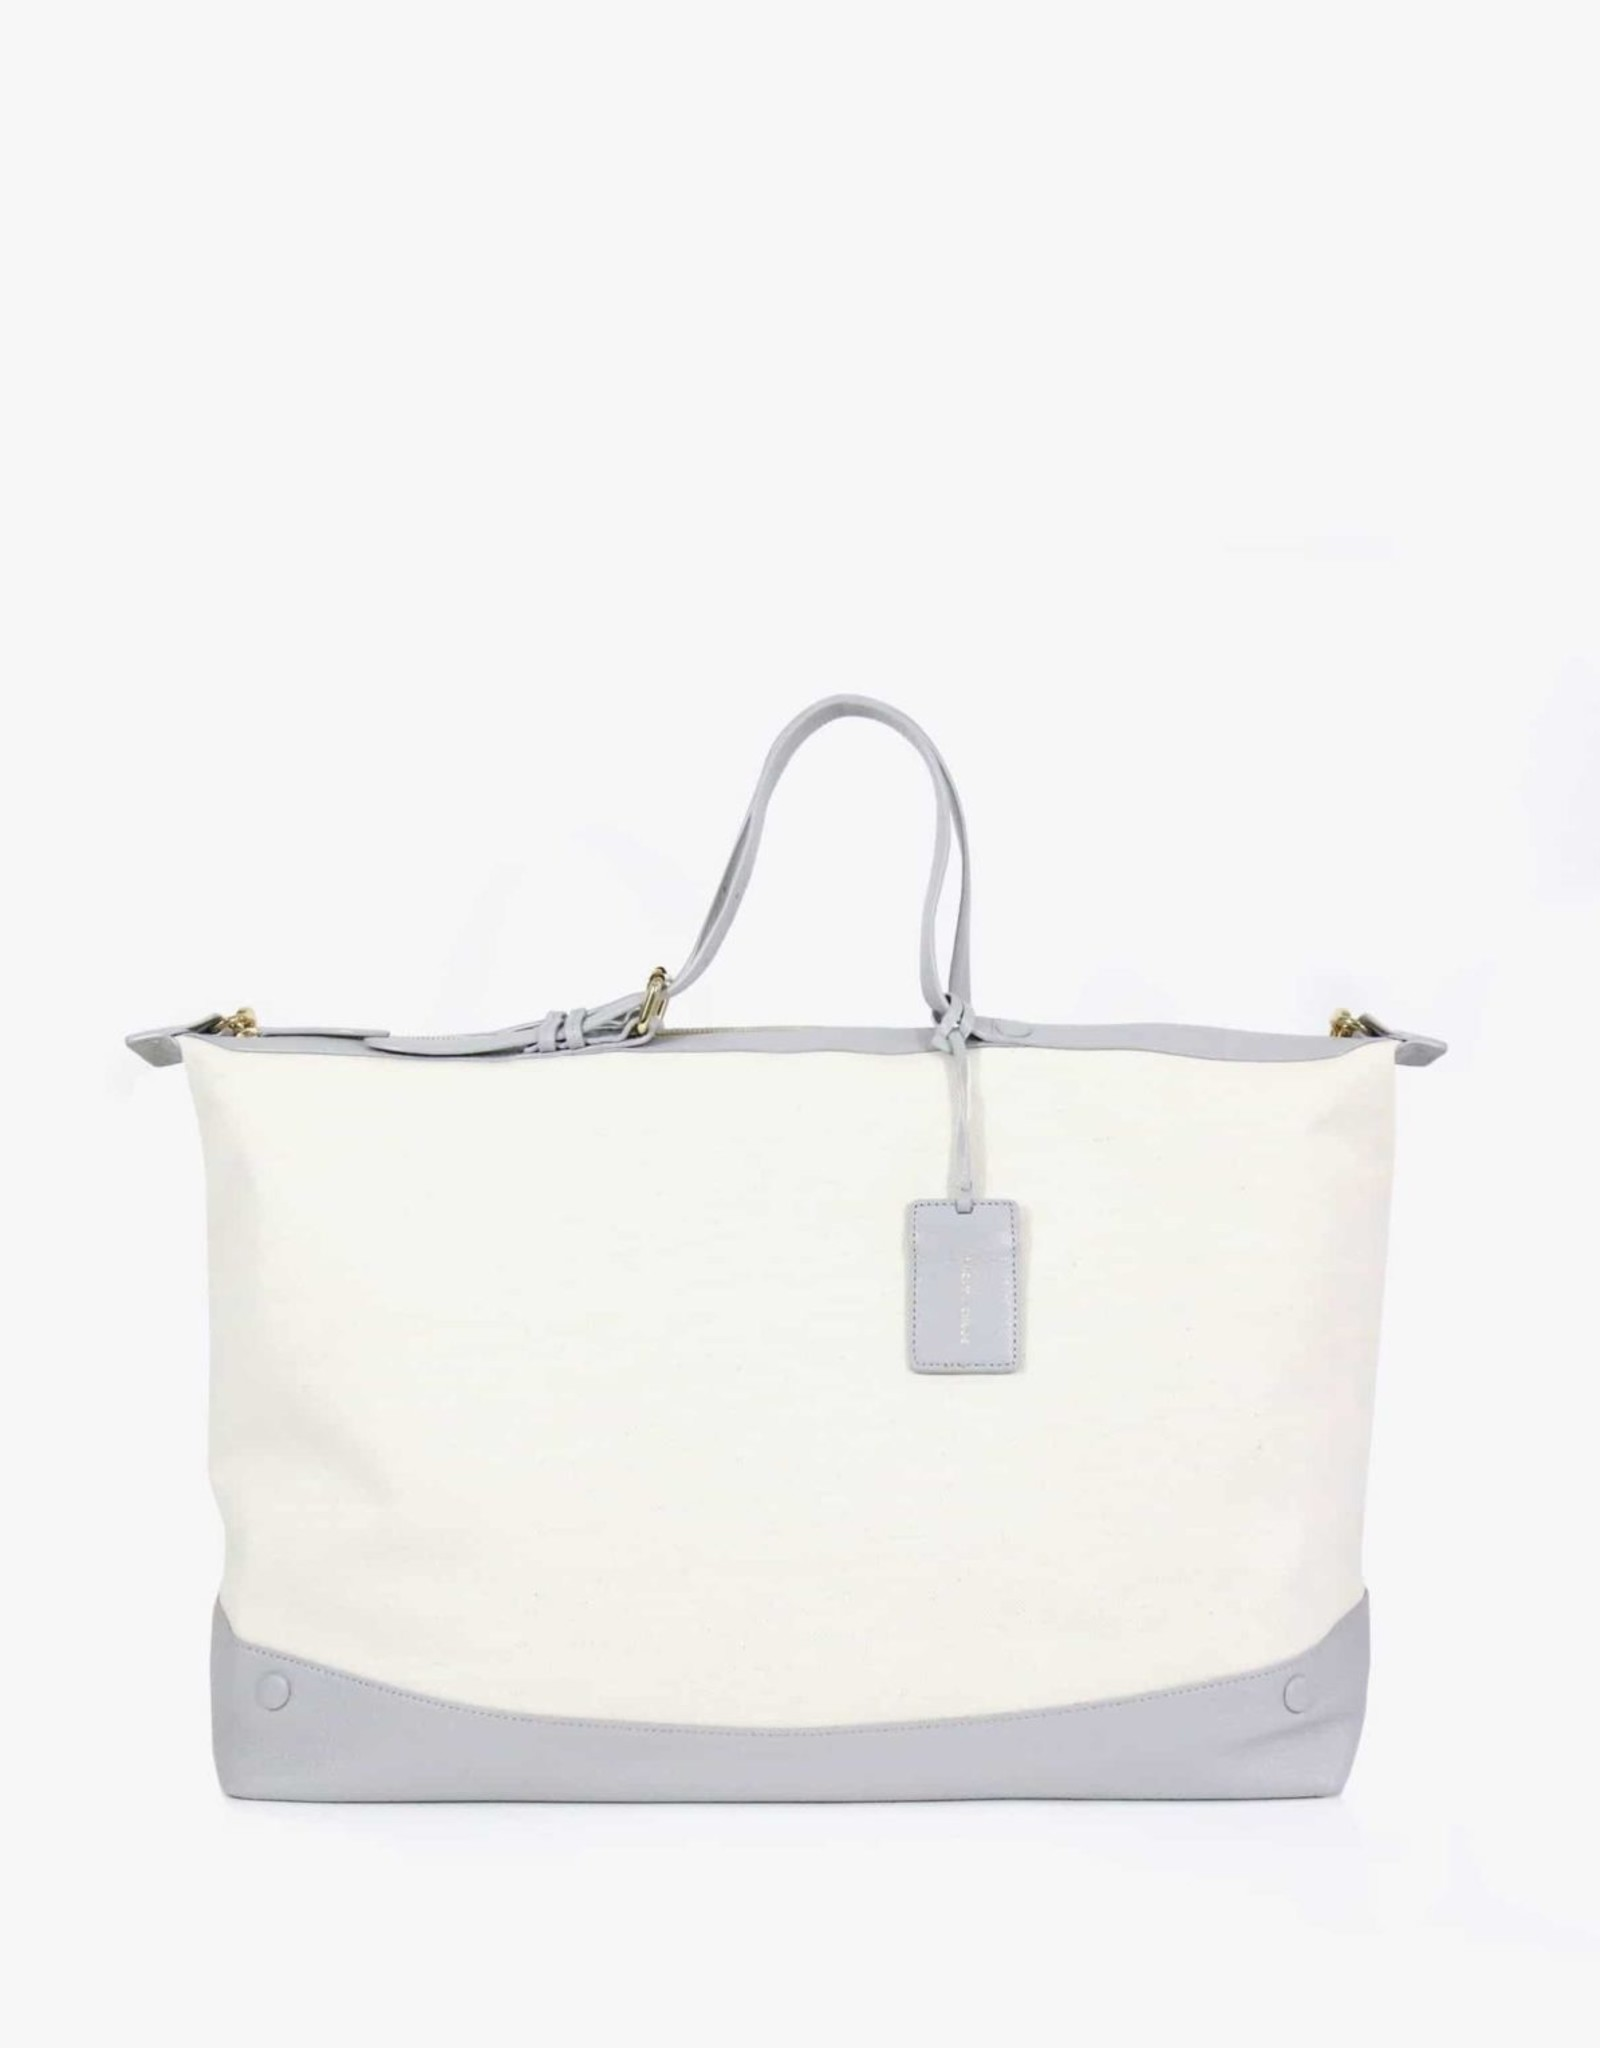 Neely & Chloe Canvas/Leather Weekender